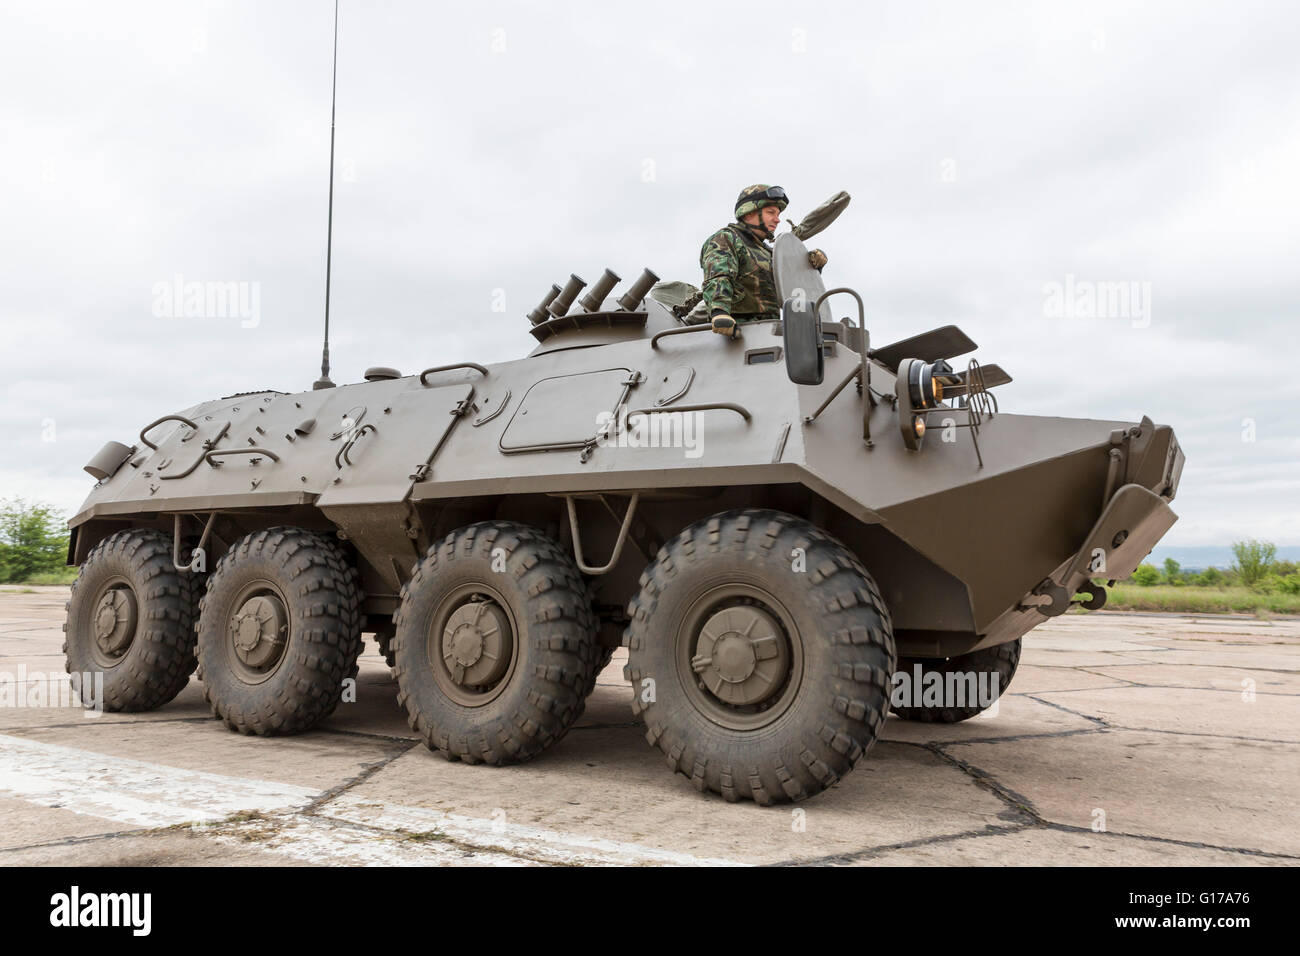 Sofia, Bulgaria - May 4, 2016: Soldiers from the Bulgarian army are preparing for a parade for Army's day in - Stock Image